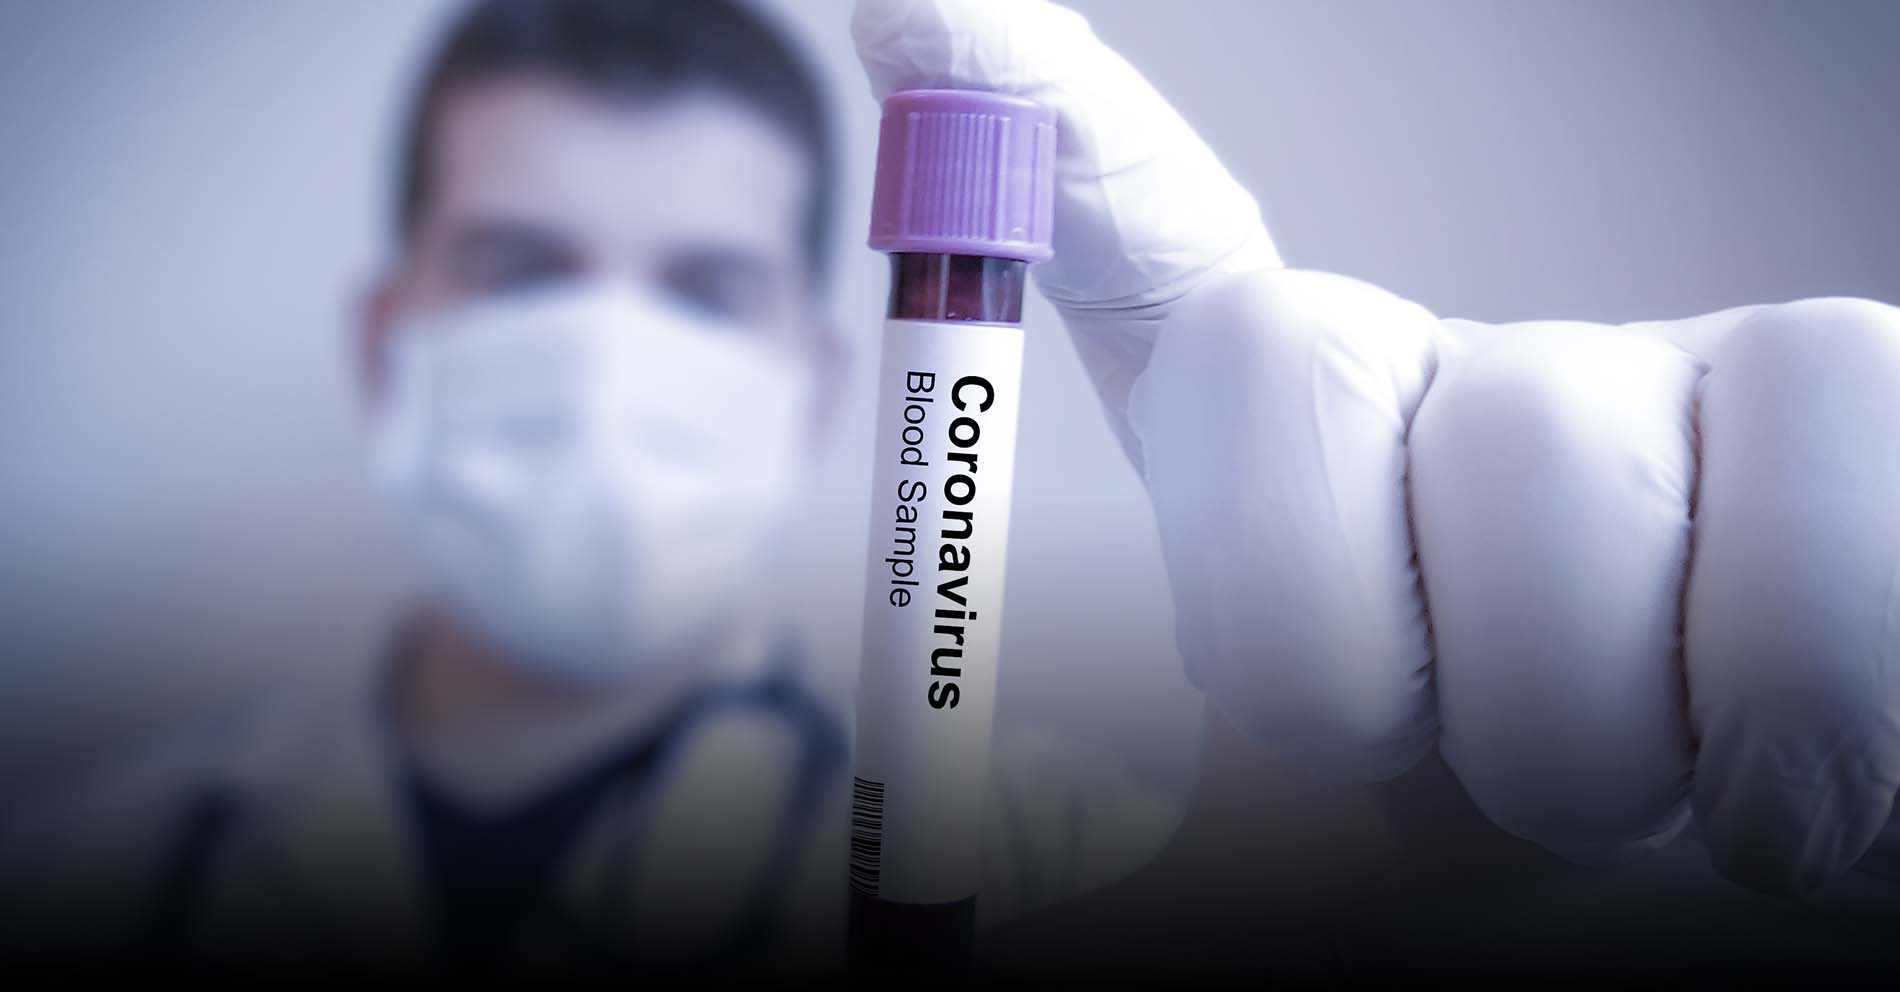 Corona virus : What is Coronavirus (2019-nCoV) - Symptoms ...